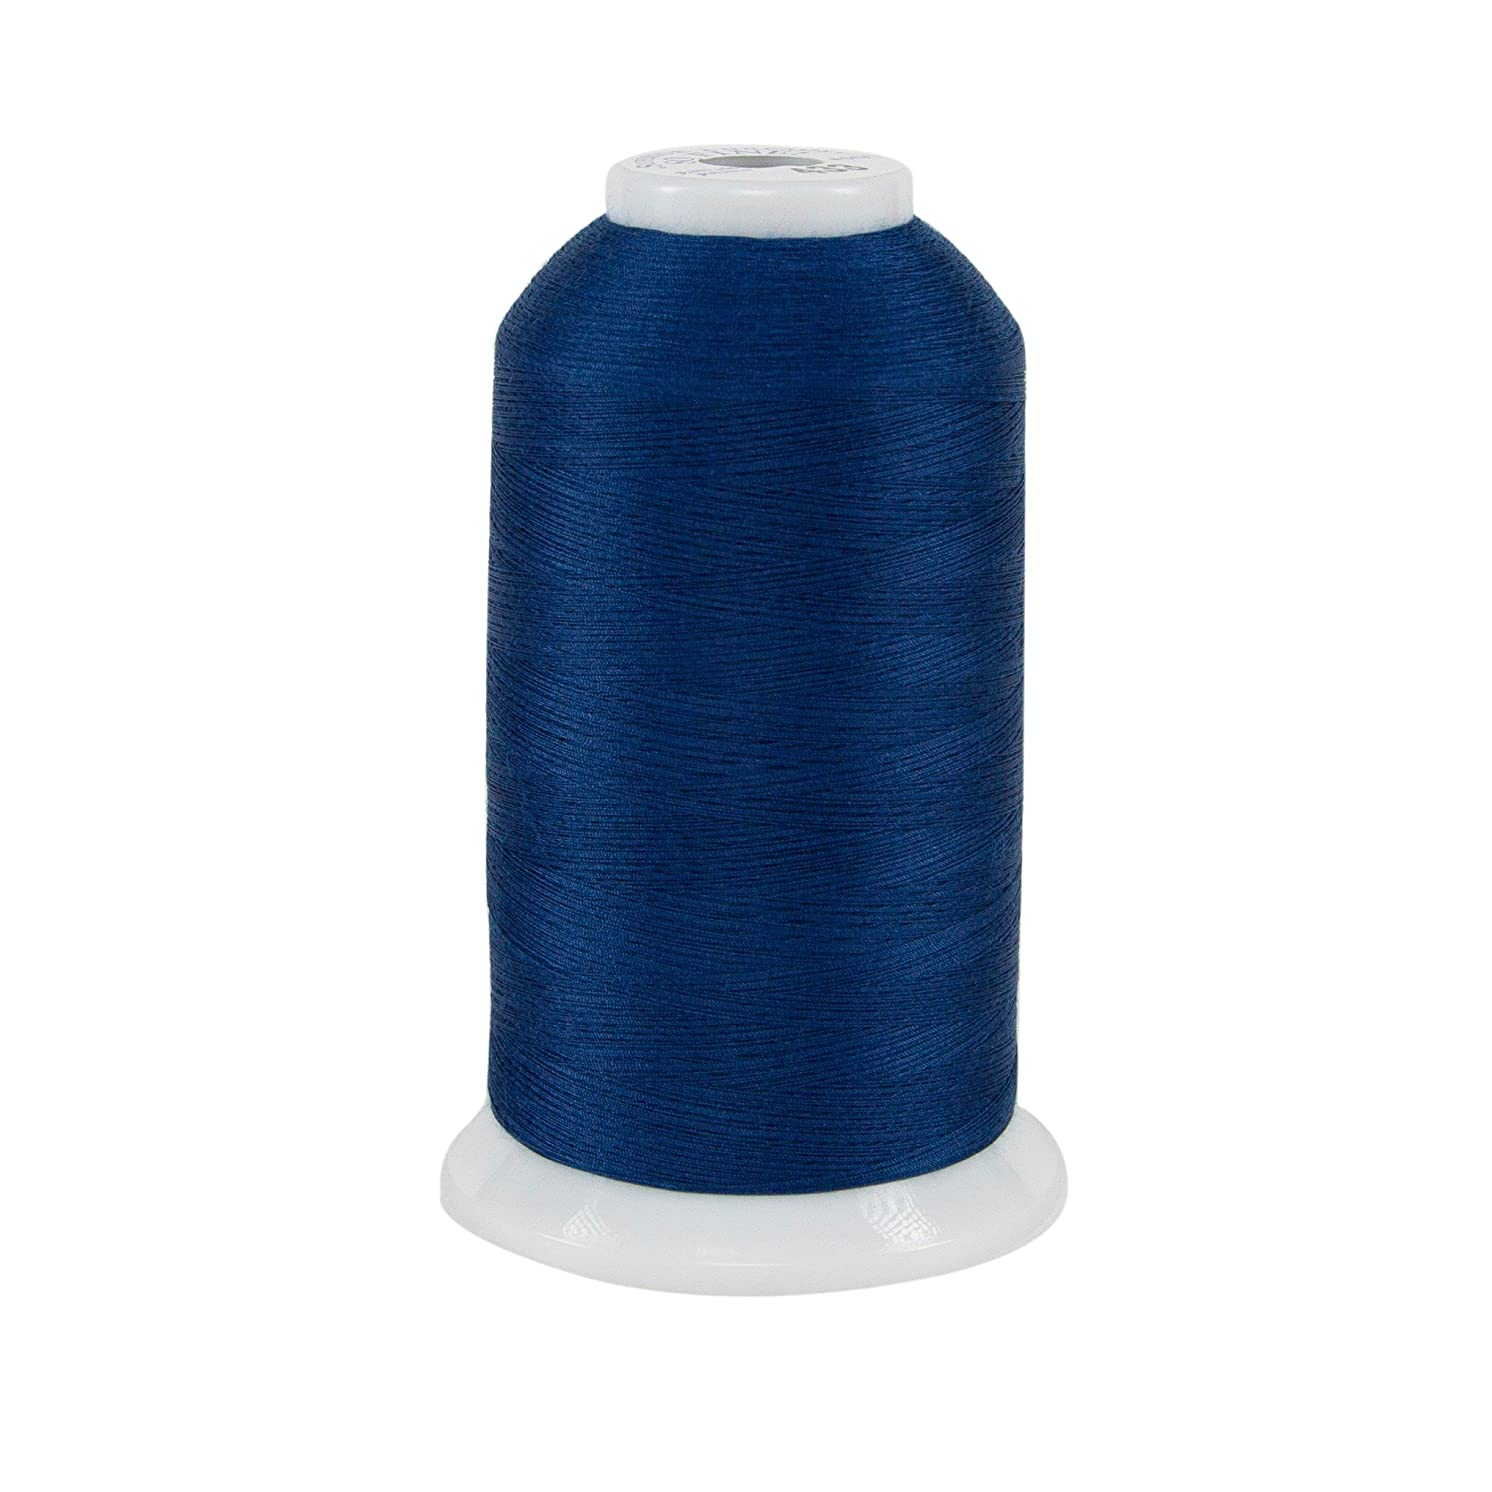 Superior Threads 11602-433 So Fine Out of The Blue 3-Ply 50W Polyester Thread, 3280 yd